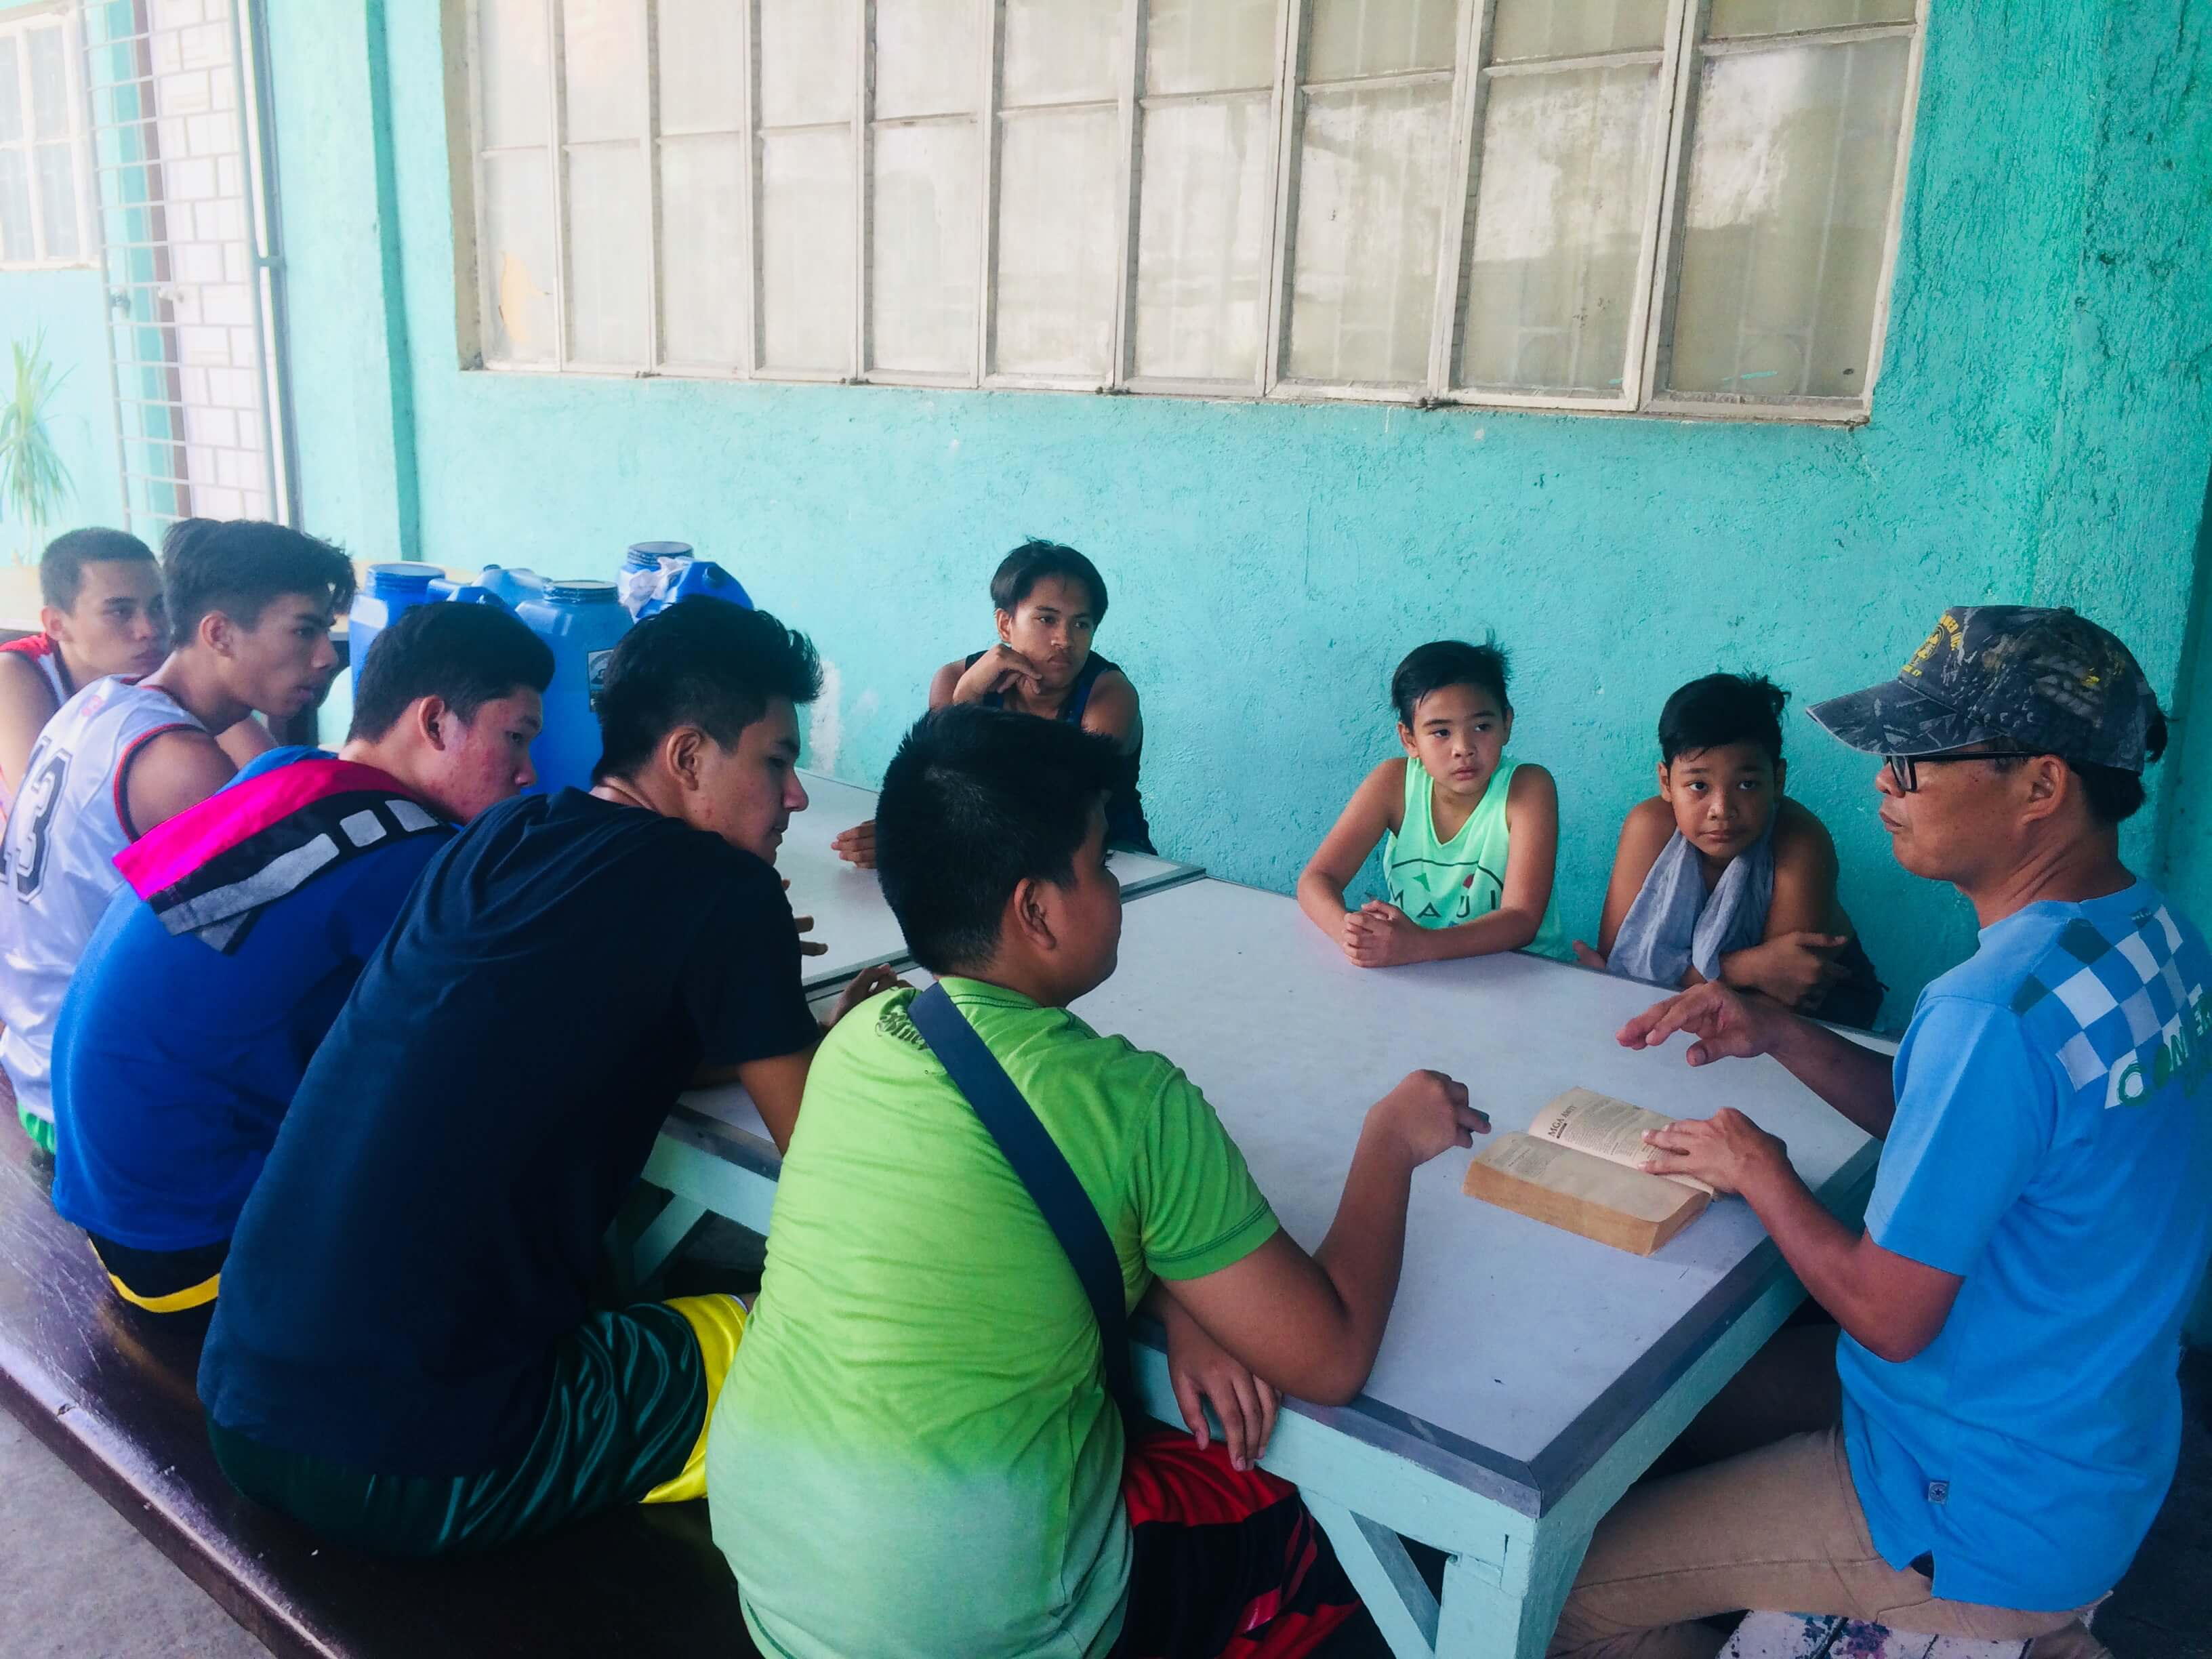 Bible Basketball League Team Devotion led by Bro. Ramil - May 1